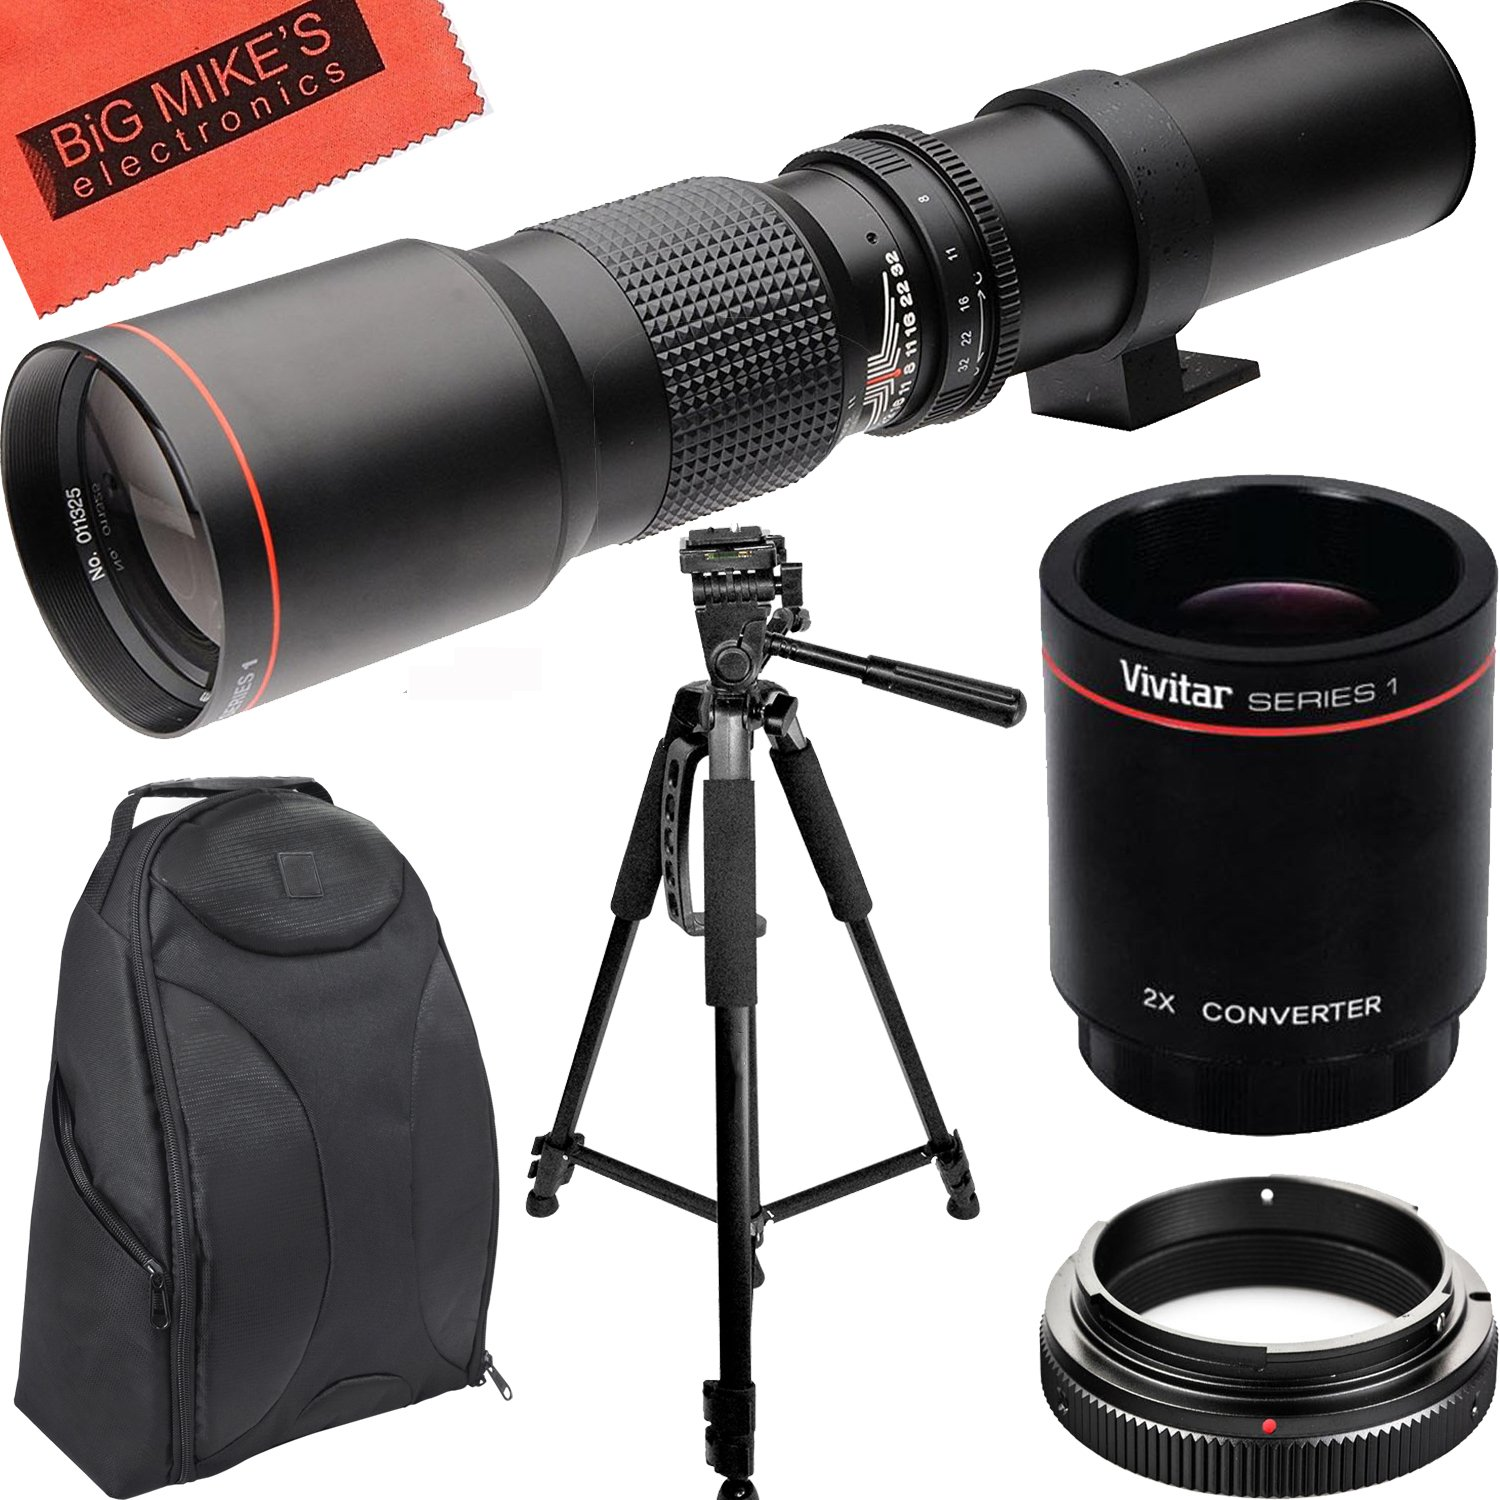 High-Power 500mm/1000mm f/8 Manual Telephoto Lens + Tripod + SLR Backpack for Canon Rebel T3, T3i, T5, T5i, T6, T6i, T6s, T7, T7i, SL1, SL2, EOS 70D, 77D, 80D, 5D III, 5D IV, 6D, 7D, 7D II Digital SLR by Big Mike's